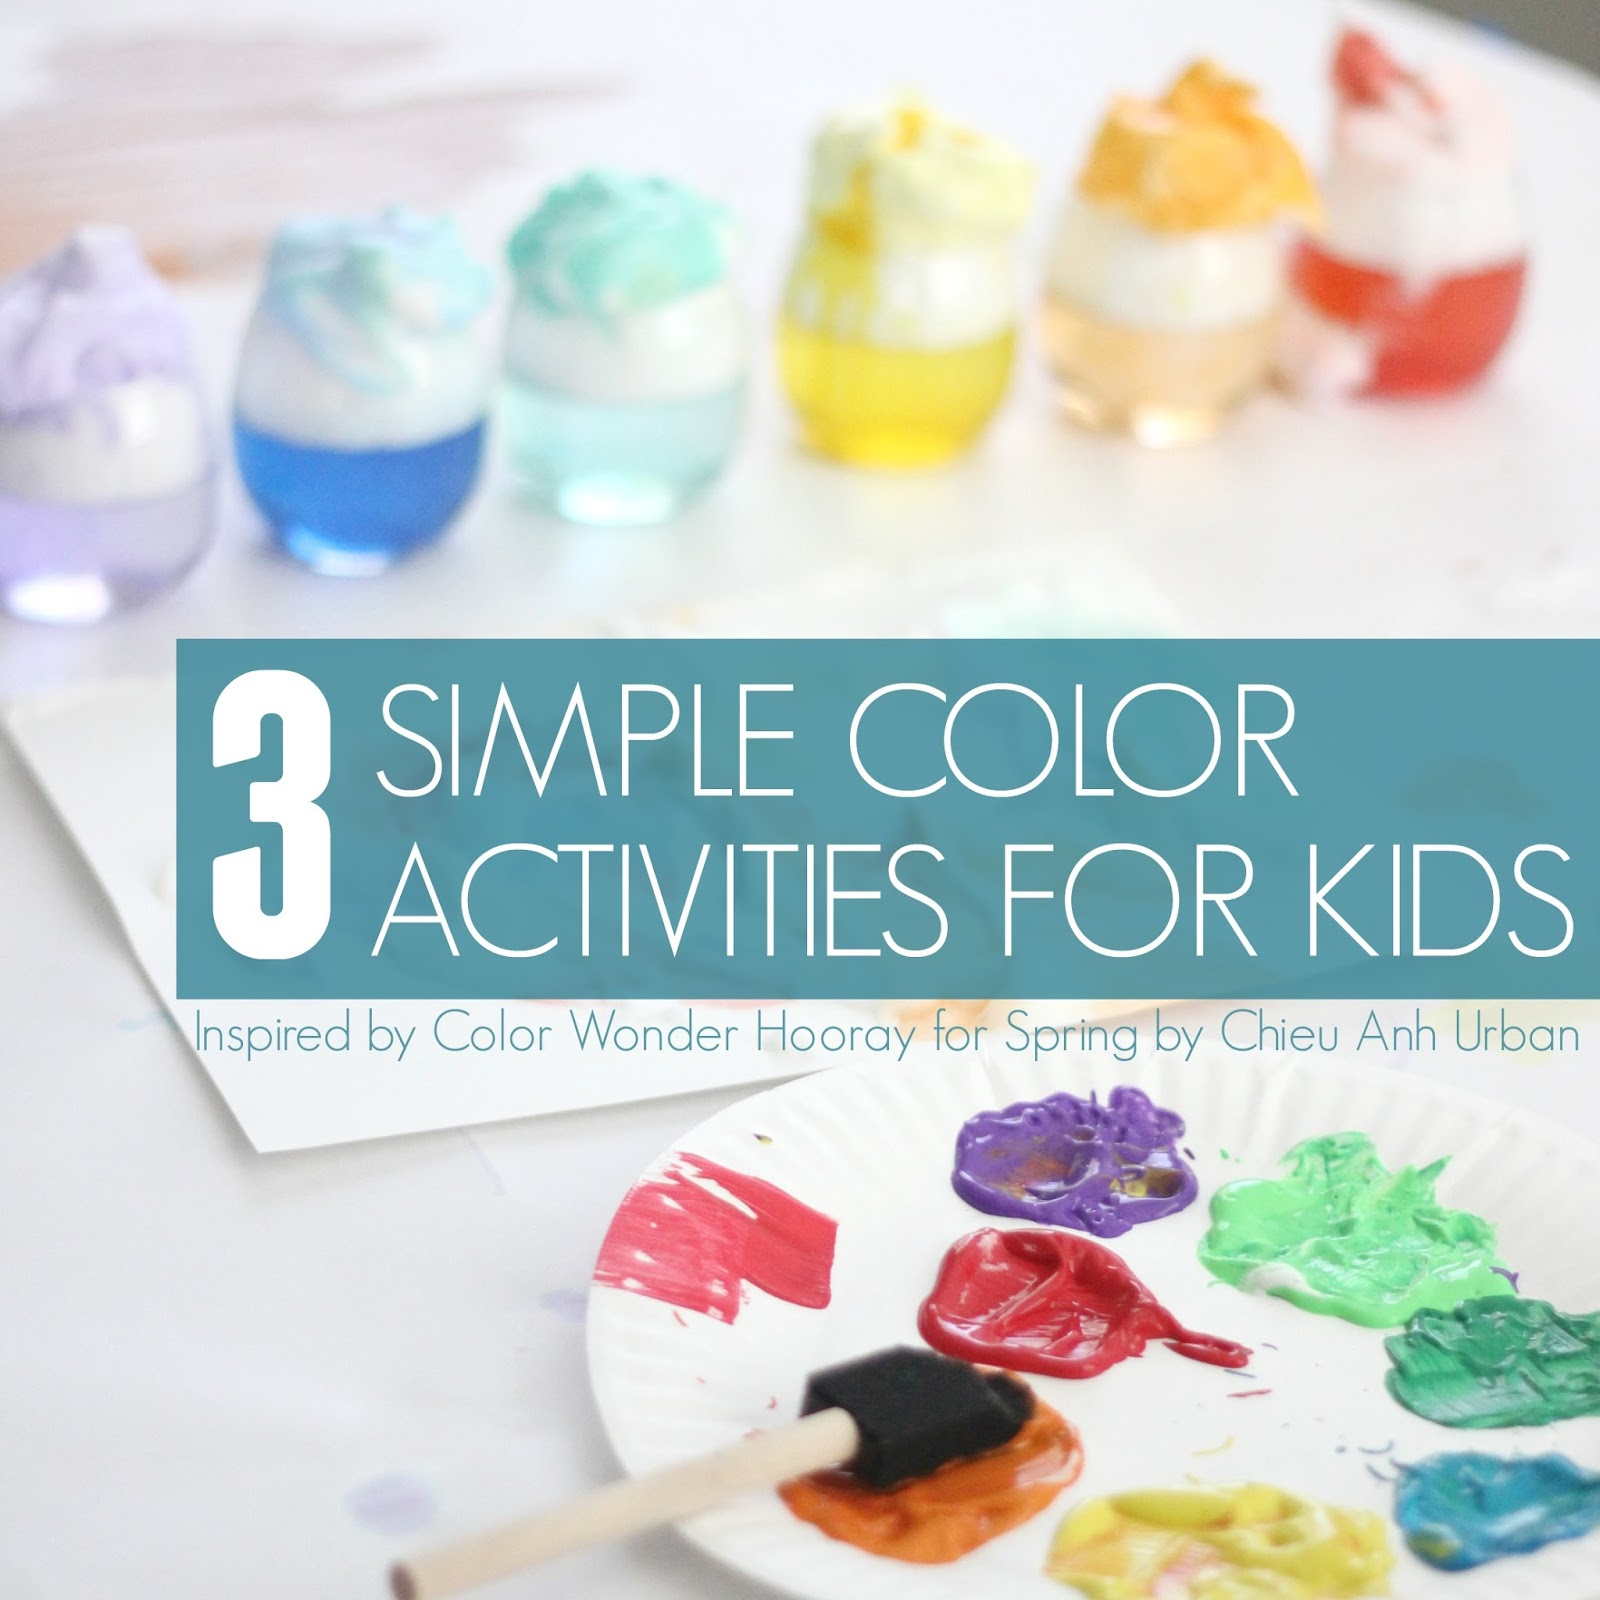 Toddler Approved!: 3 Simple Rainbow Color Activities for